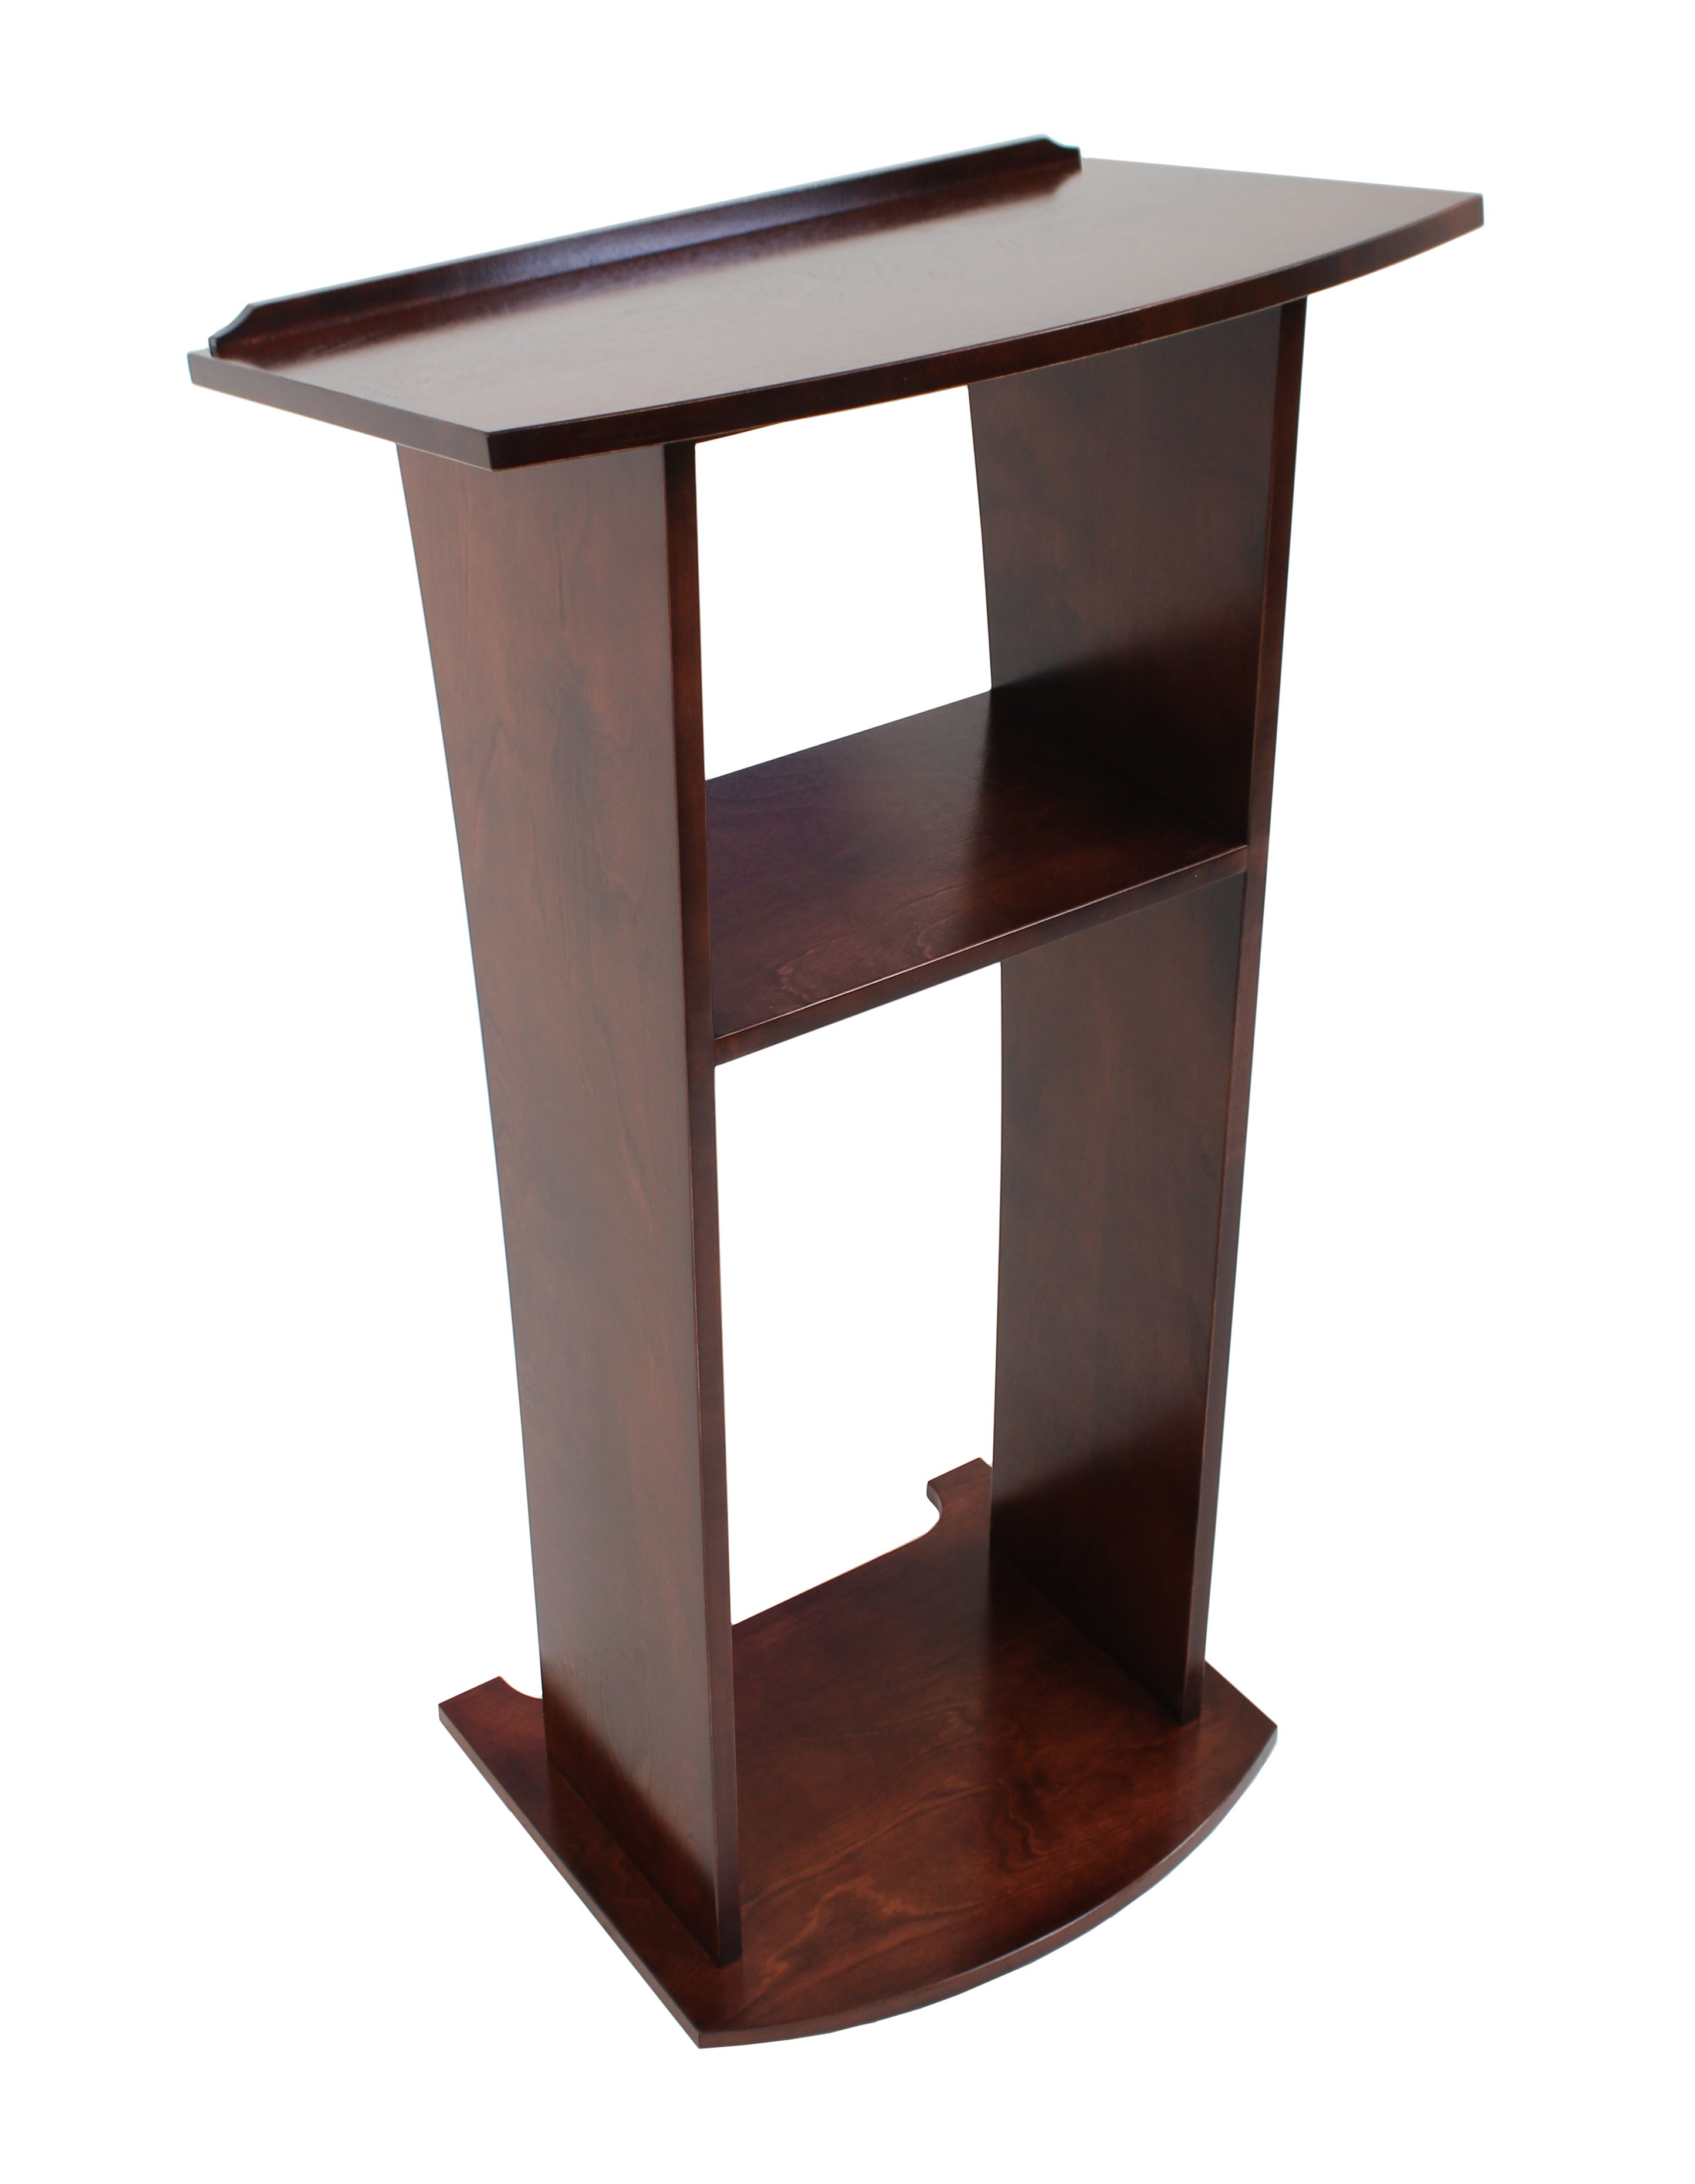 Our Redeemer Pulpit is a popular piece of church furniture due to